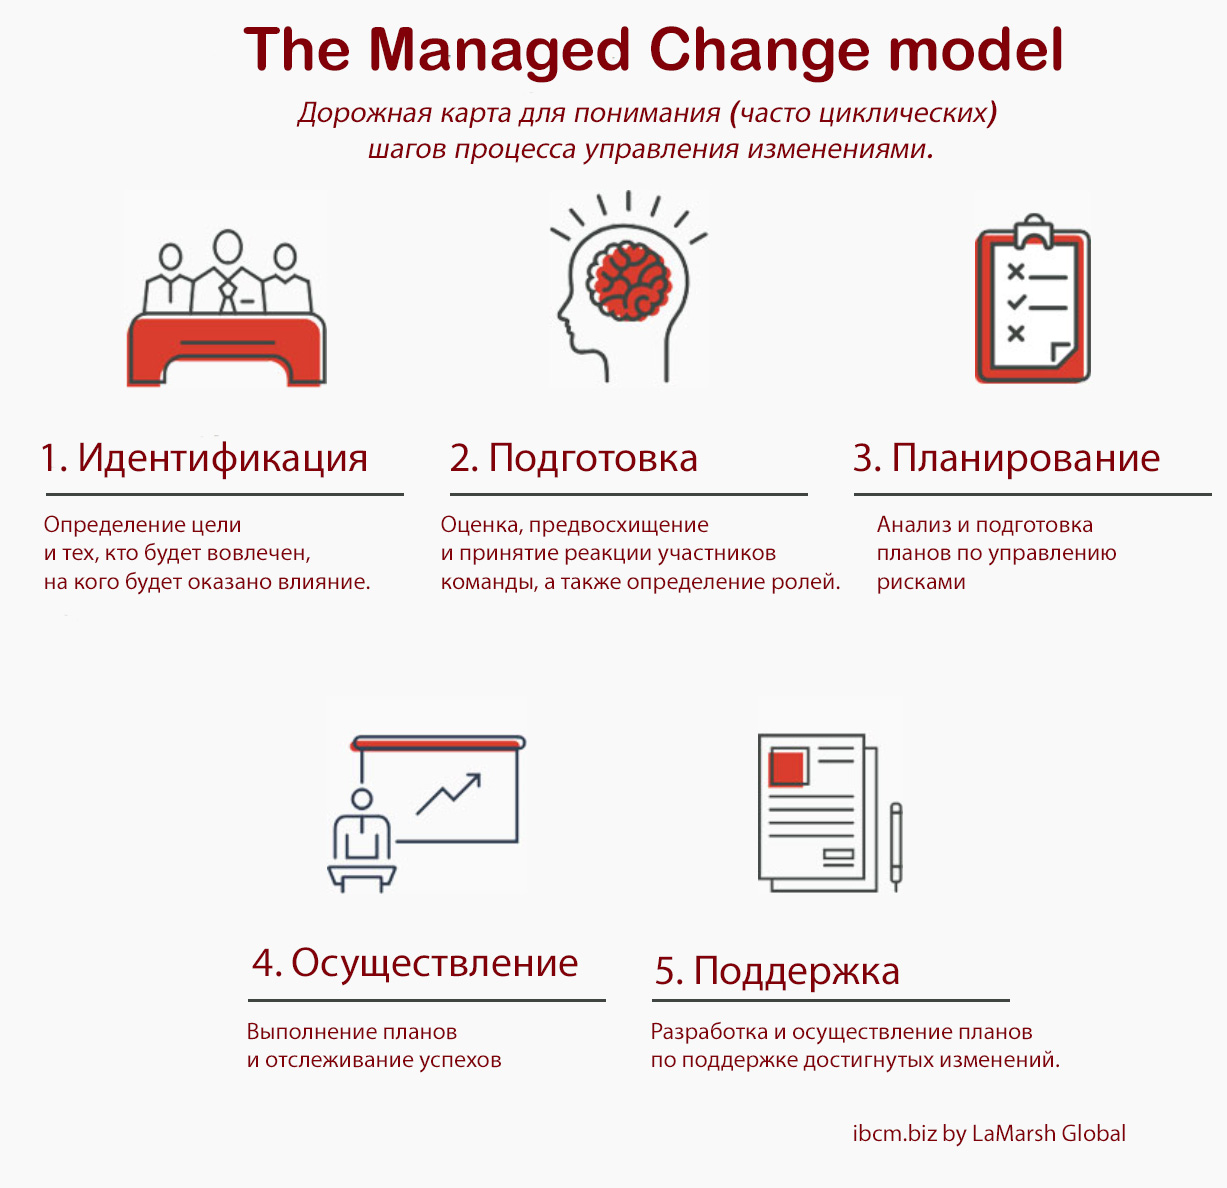 The Managed Change model LaMarsh Global